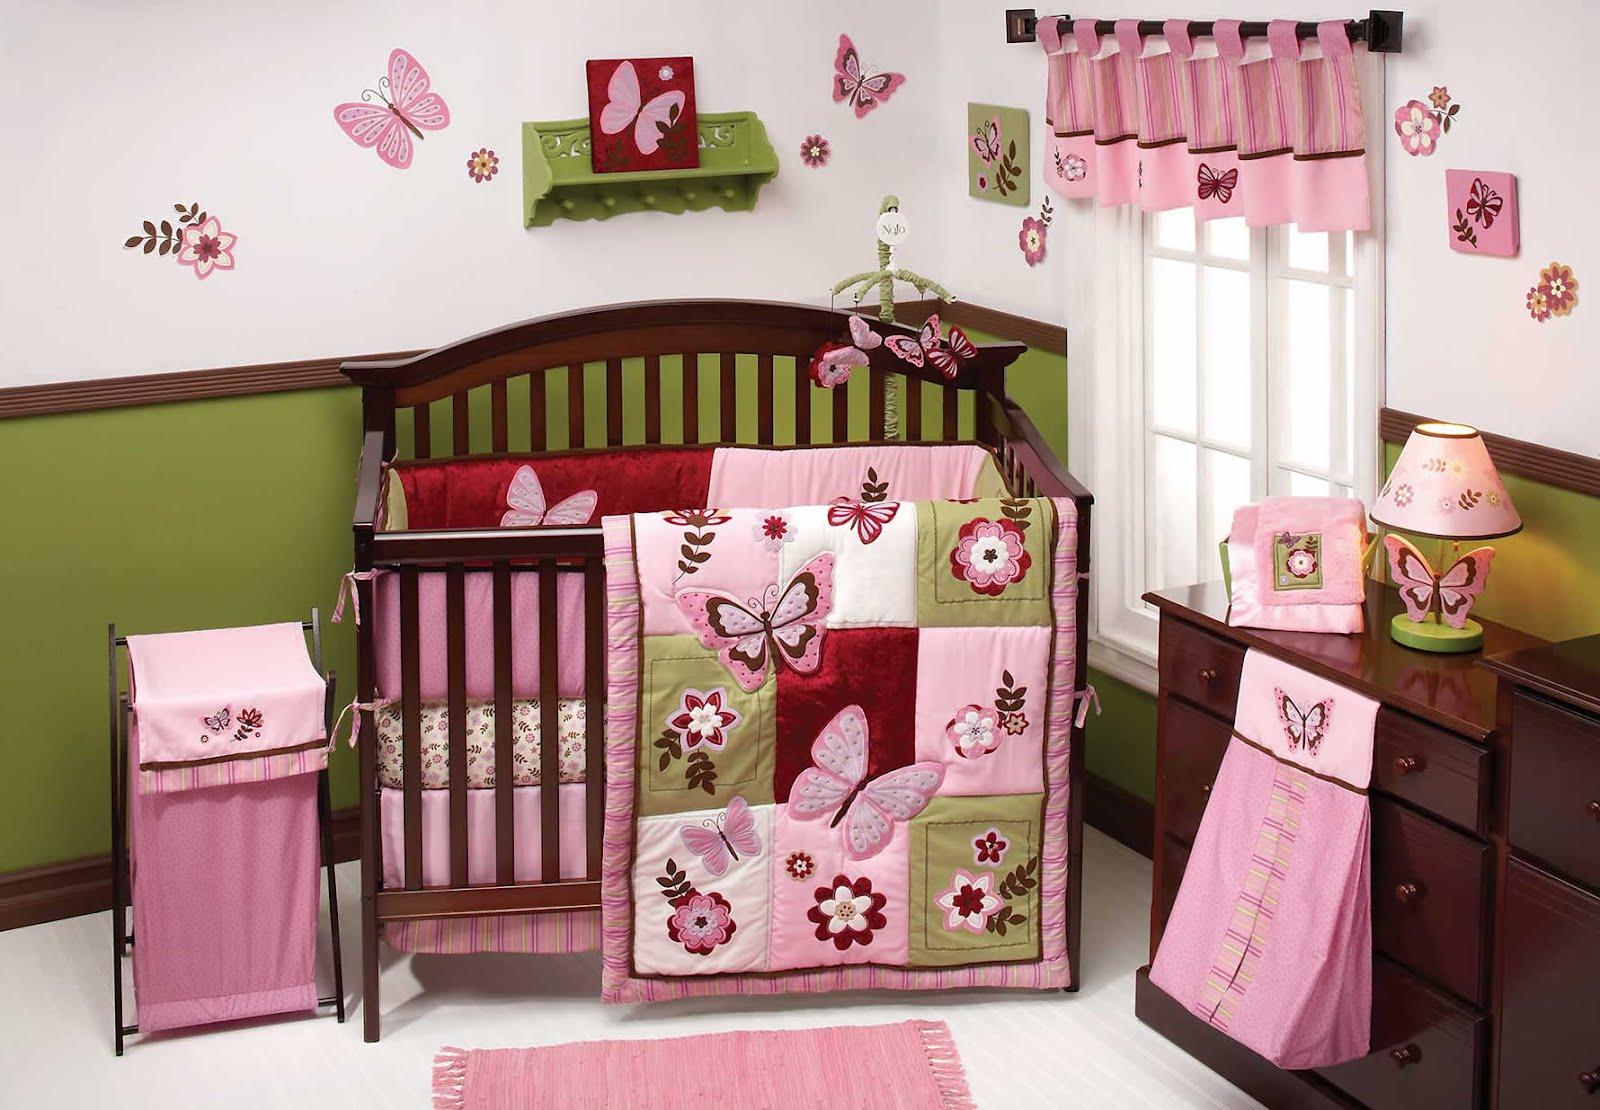 Nojo baby bedding review giveaway two of a kind working on a full house Baby bedroom furniture sets